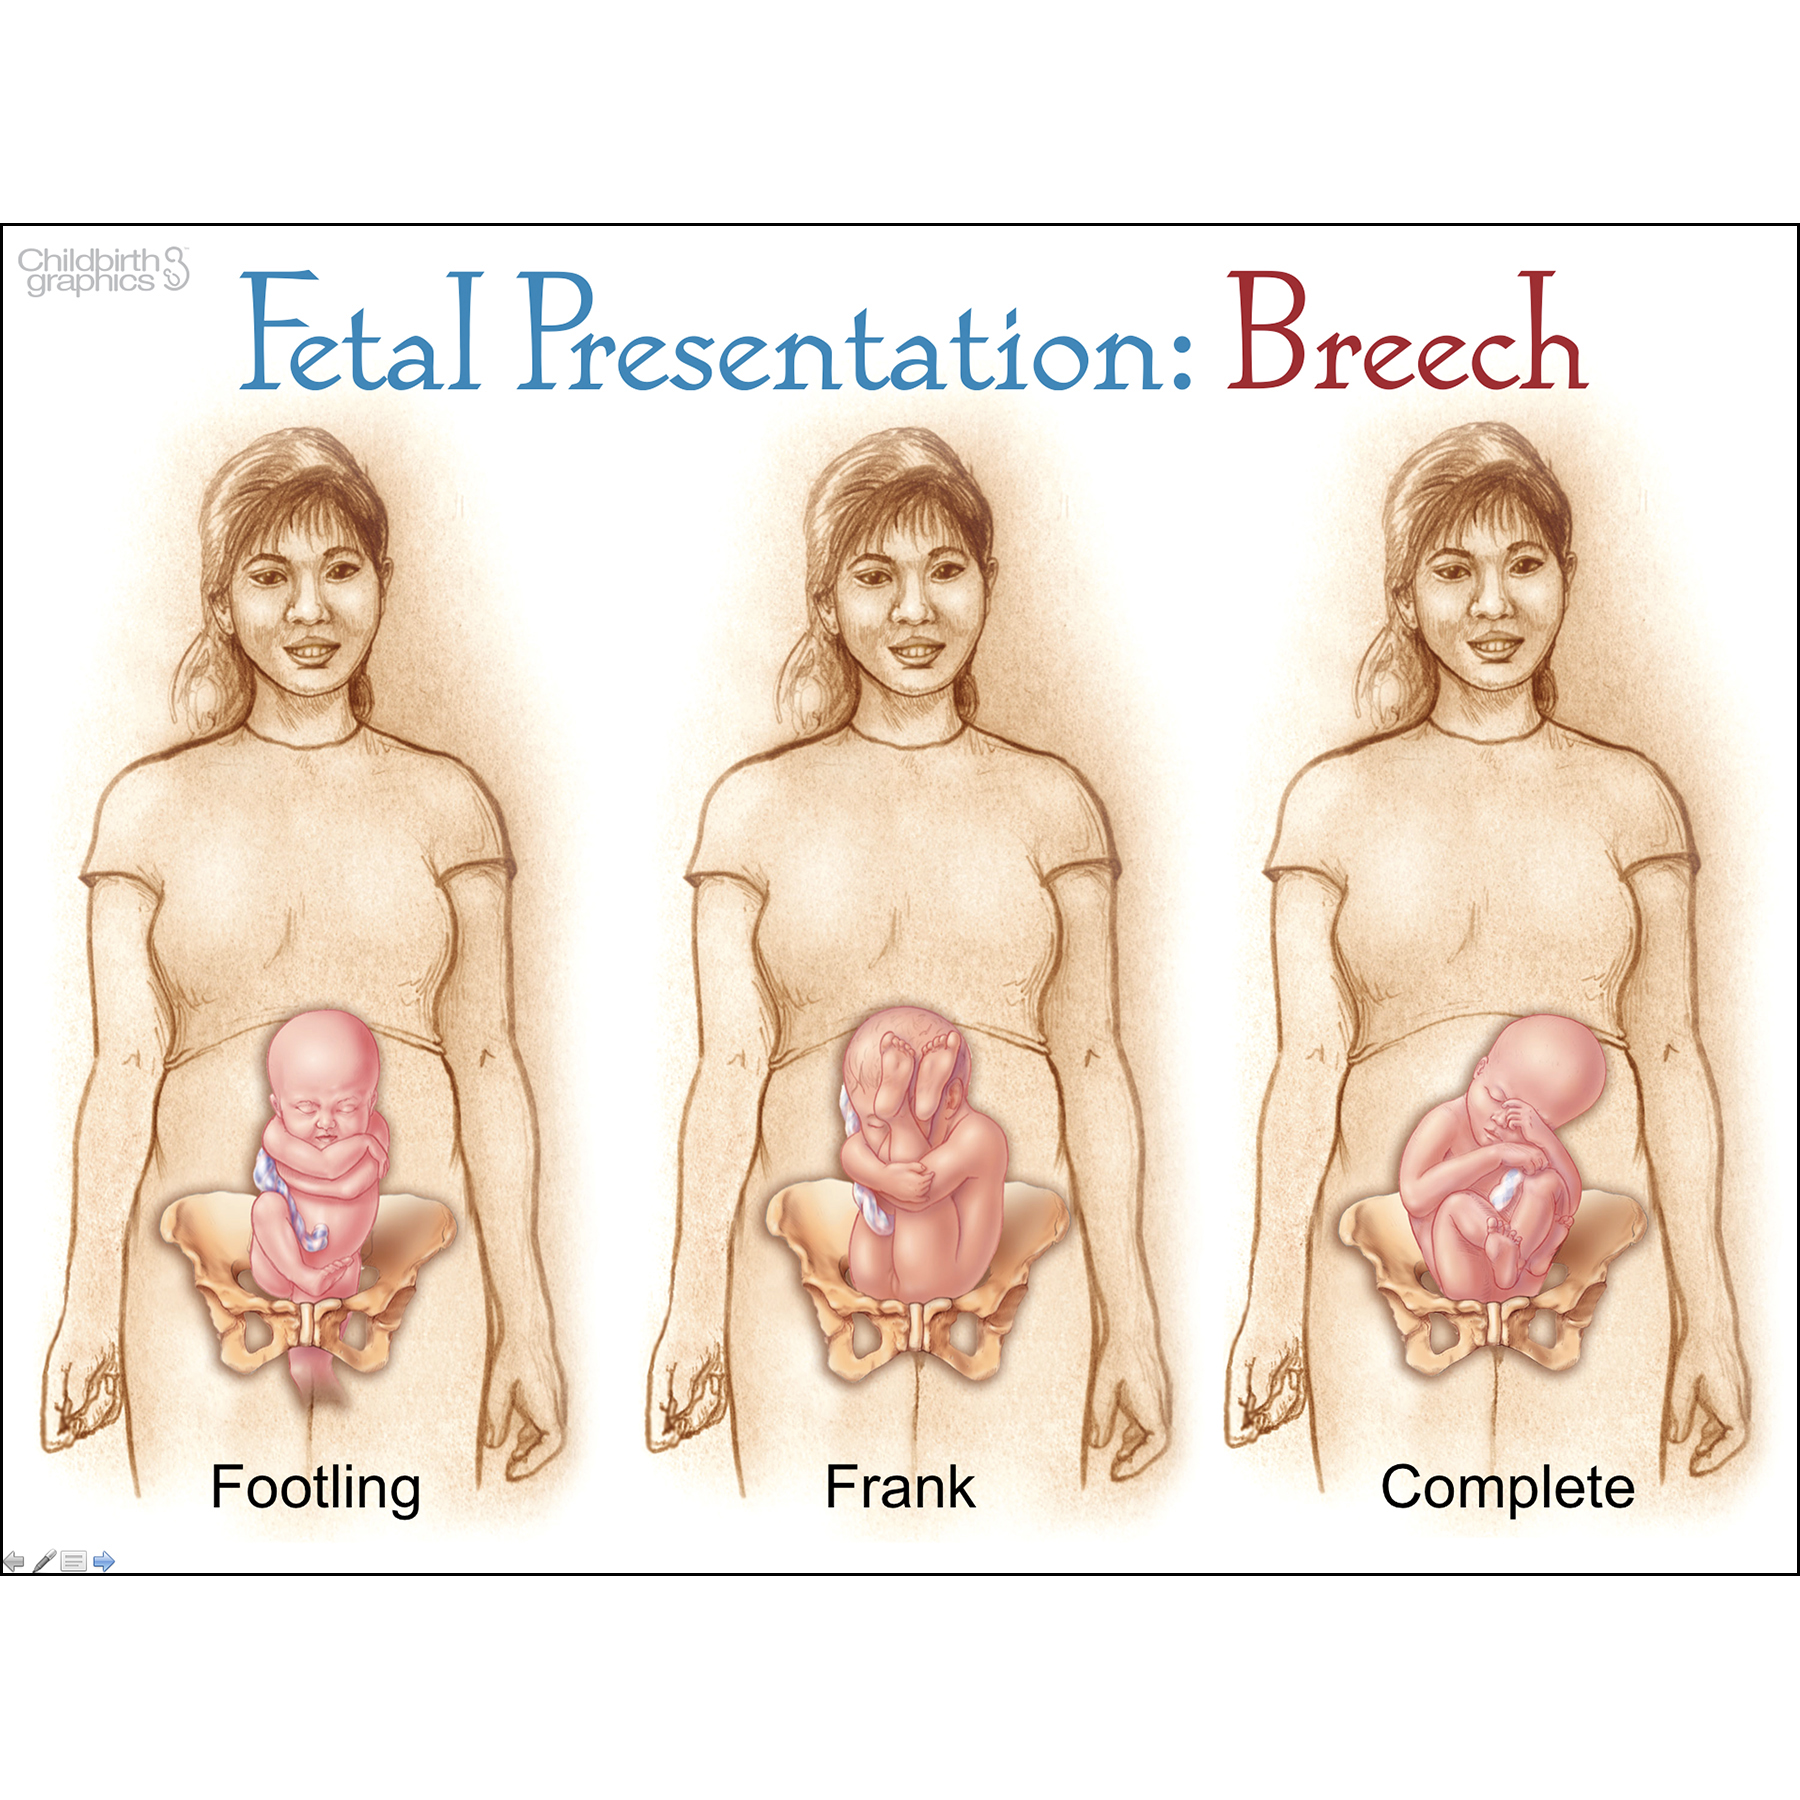 With Child PowerPoint, comprehensive 116 frame pre-pregnancy to 6 months postpartum presentation on disk with 46 page resource guide, fetal presentation-breech frame, Childbirth Graphics, 30855